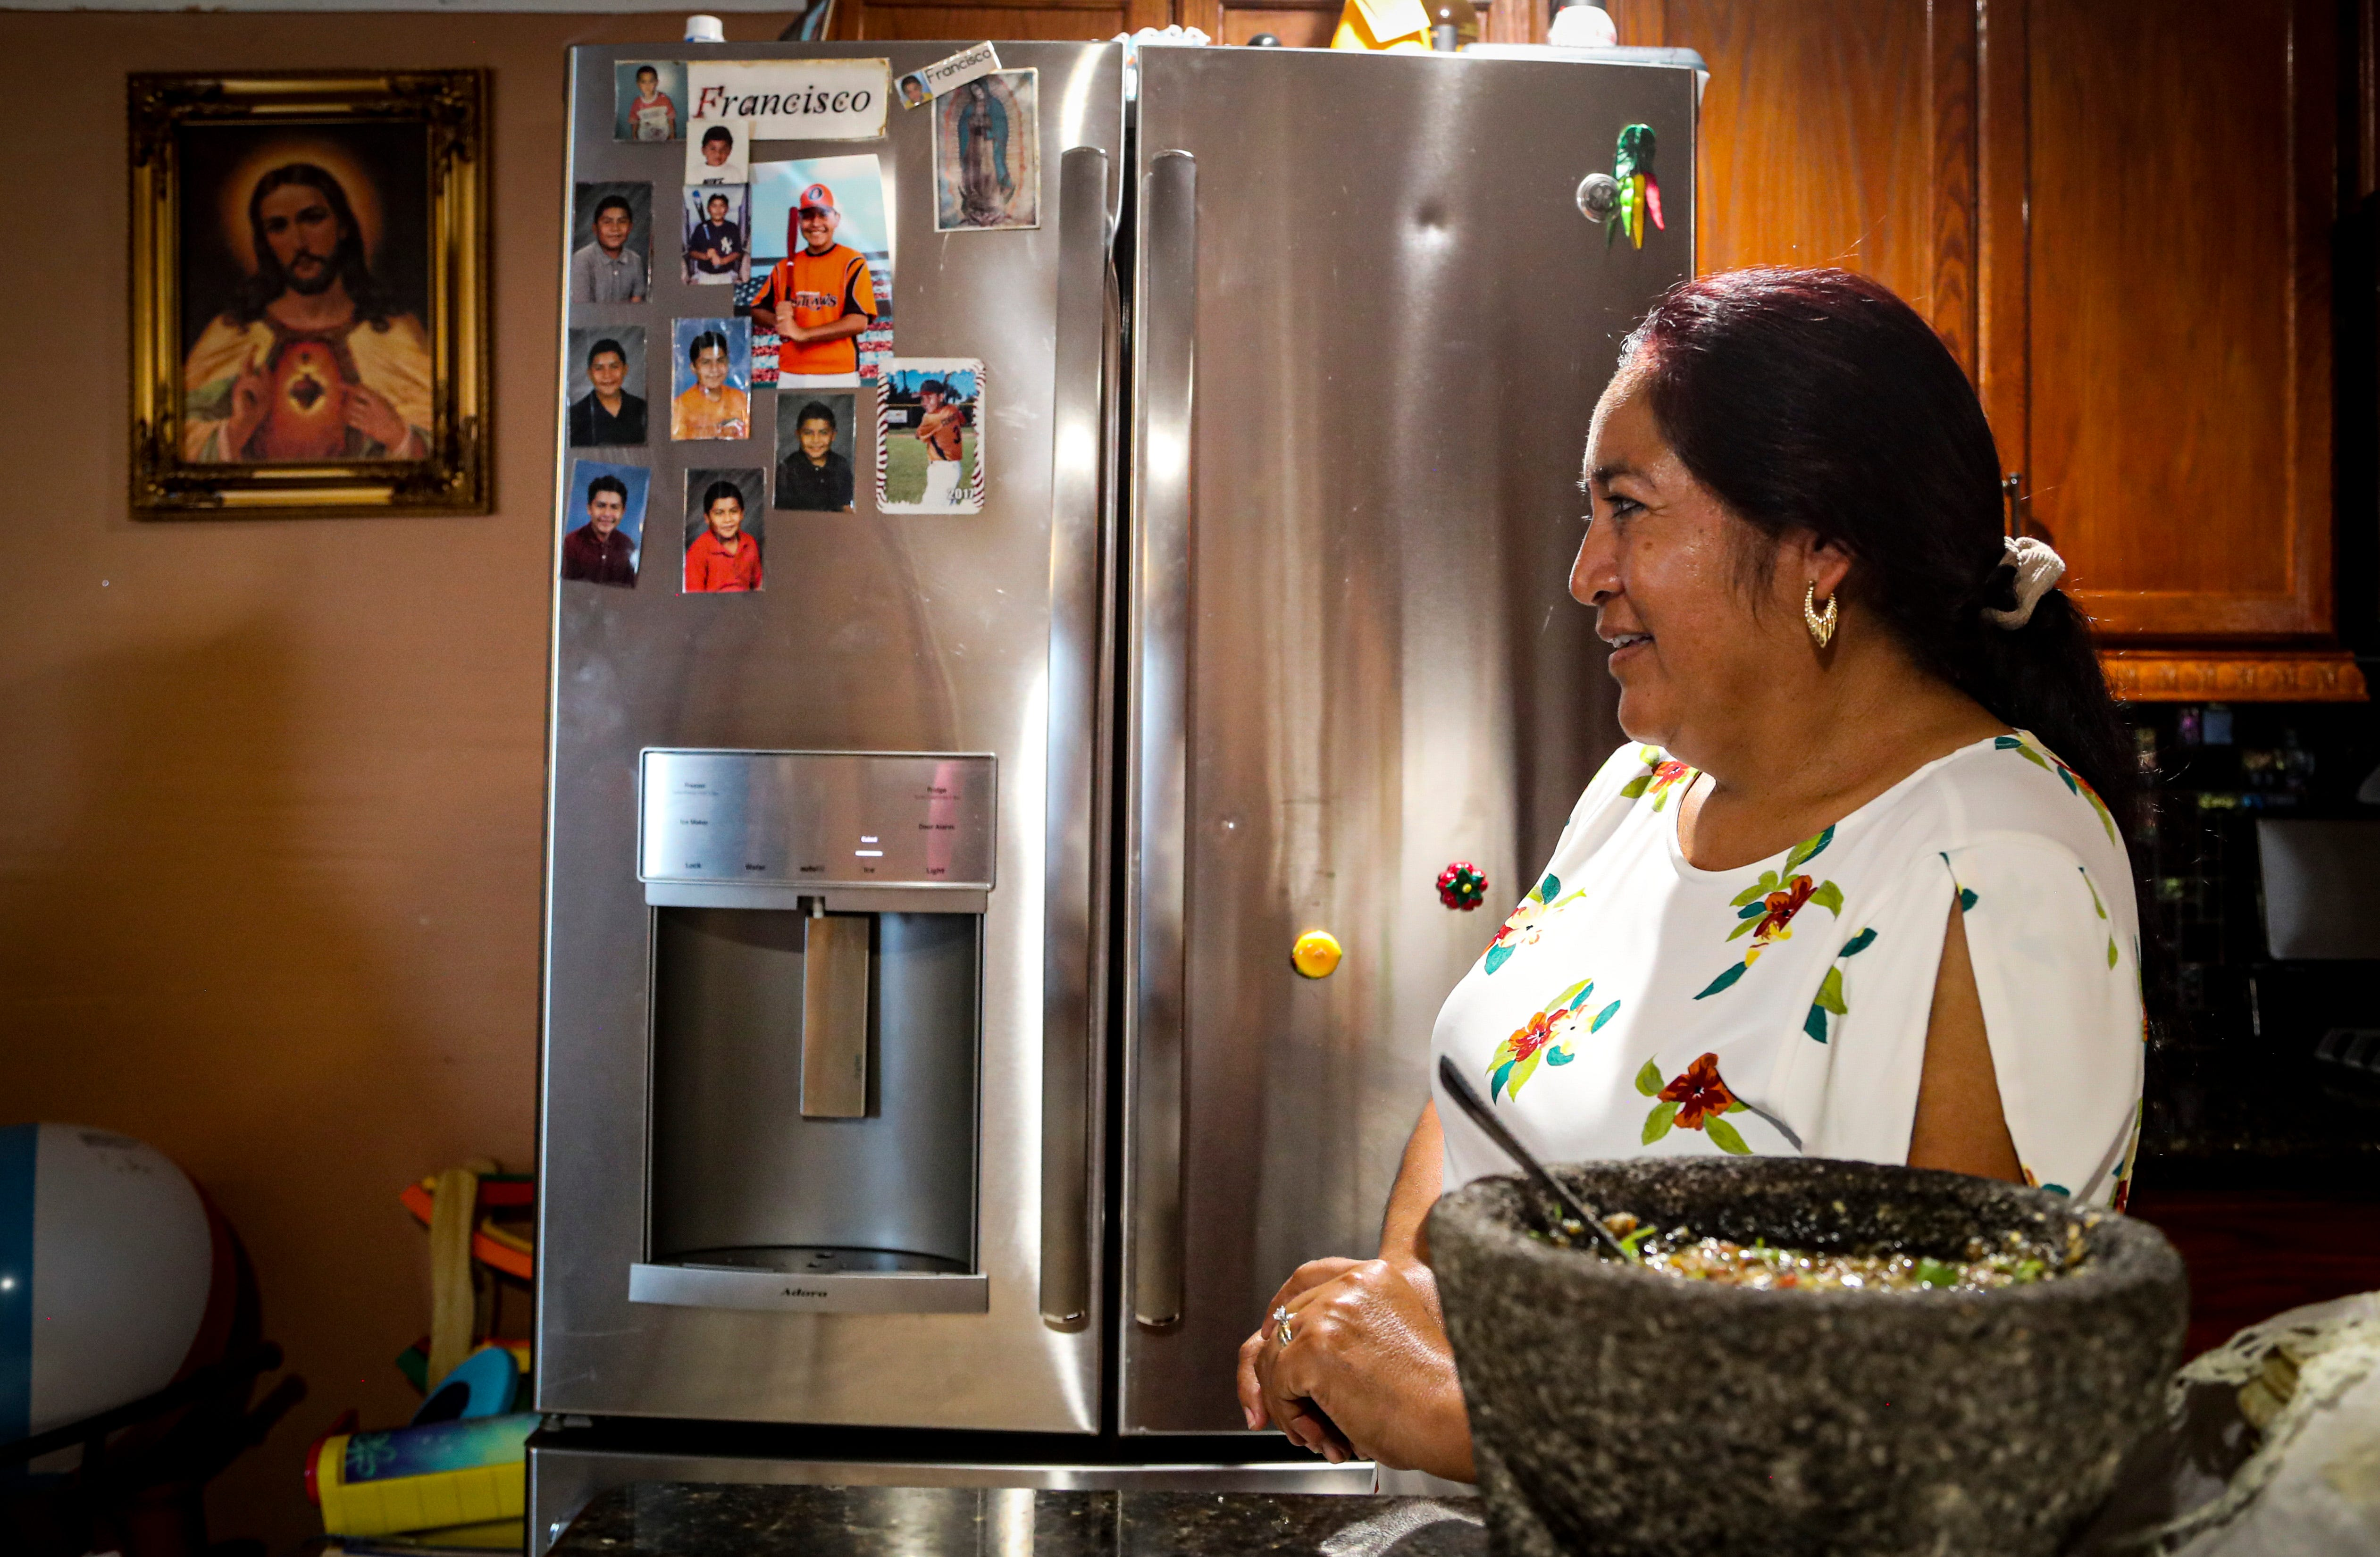 Matilde Angeles, 51, of Naples, migrates with tomato crops. She worried about being able to help her 16-year-old son Francisco Angeles during virtual school because she lacks computer skills. However, her son excelled in virtual school.